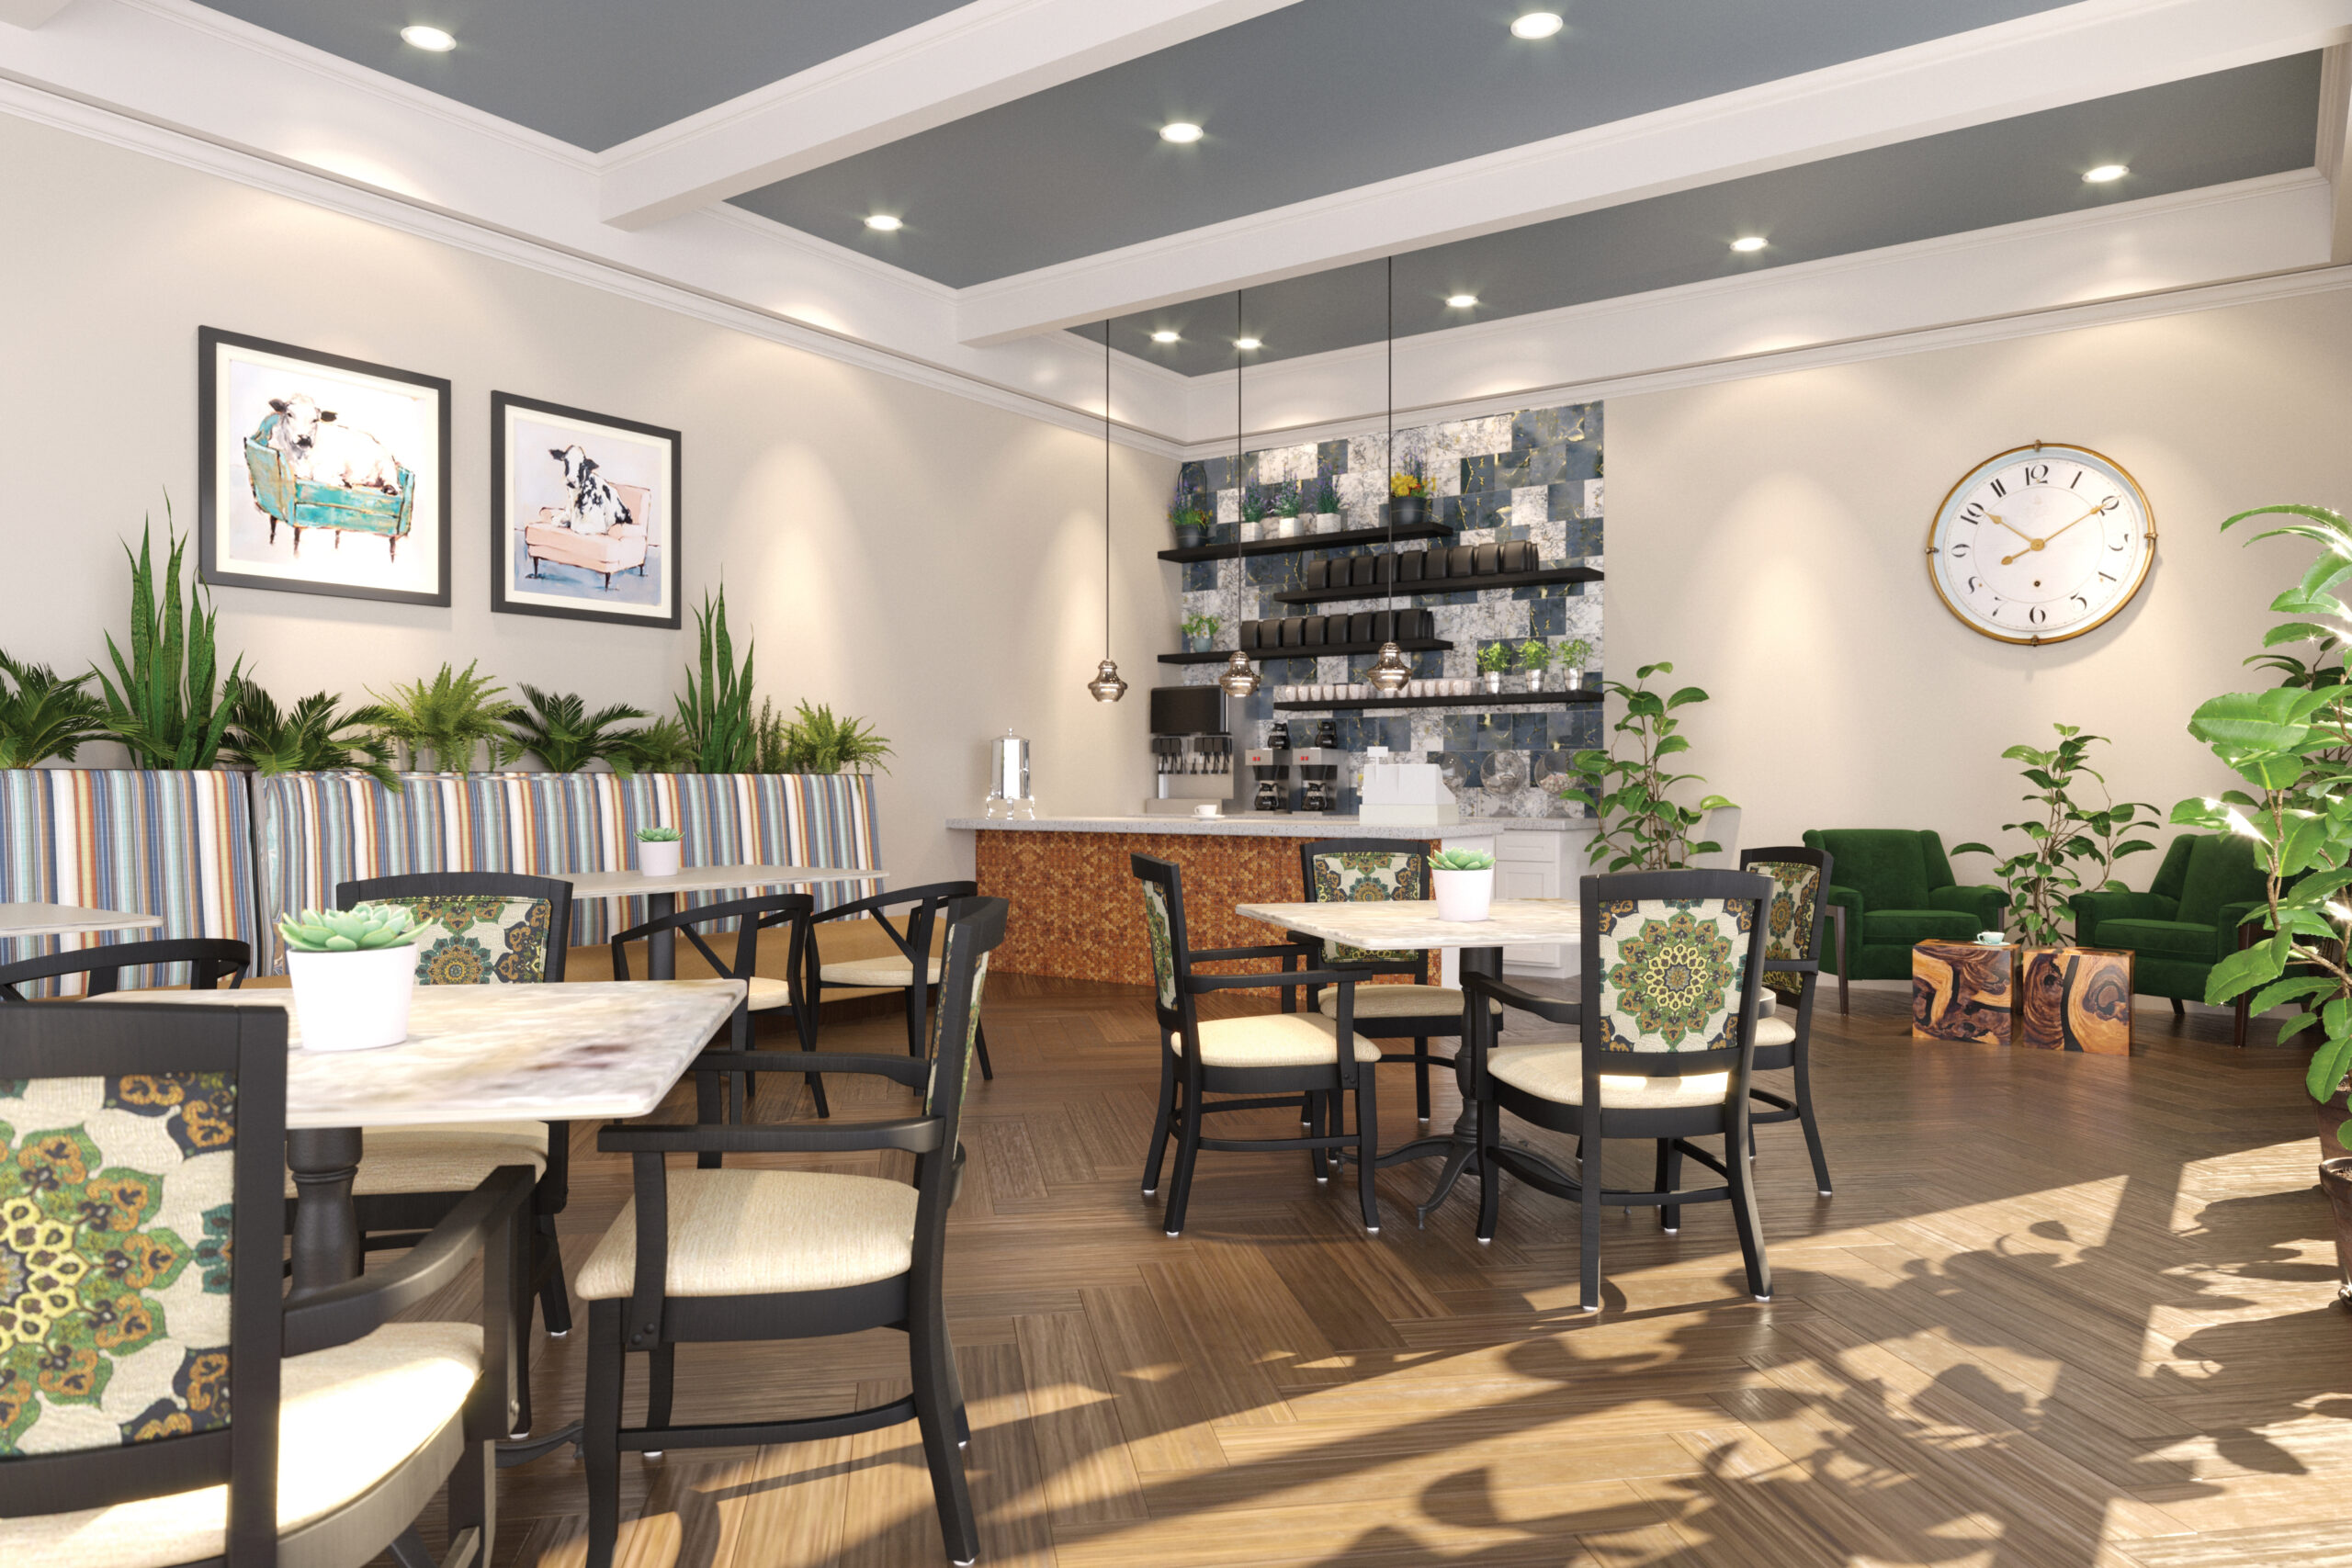 Bistro bar with seating area, beige walls, and cow artwork